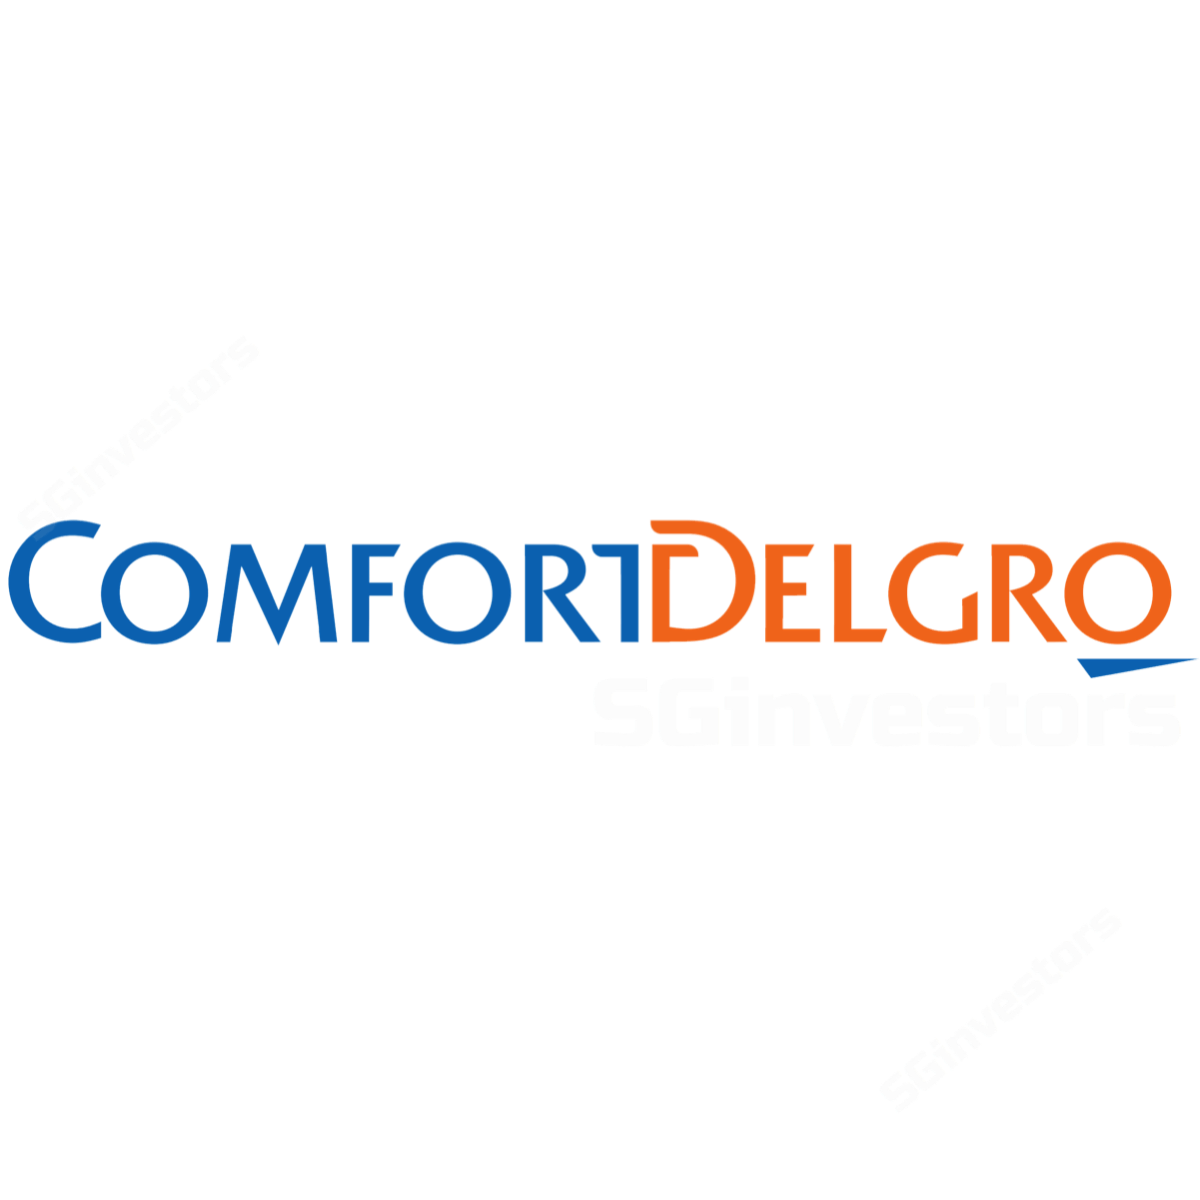 ComfortDelGro - DBS Vickers 2018-02-14: Watching For Fleet Stabilisation/ Reversal